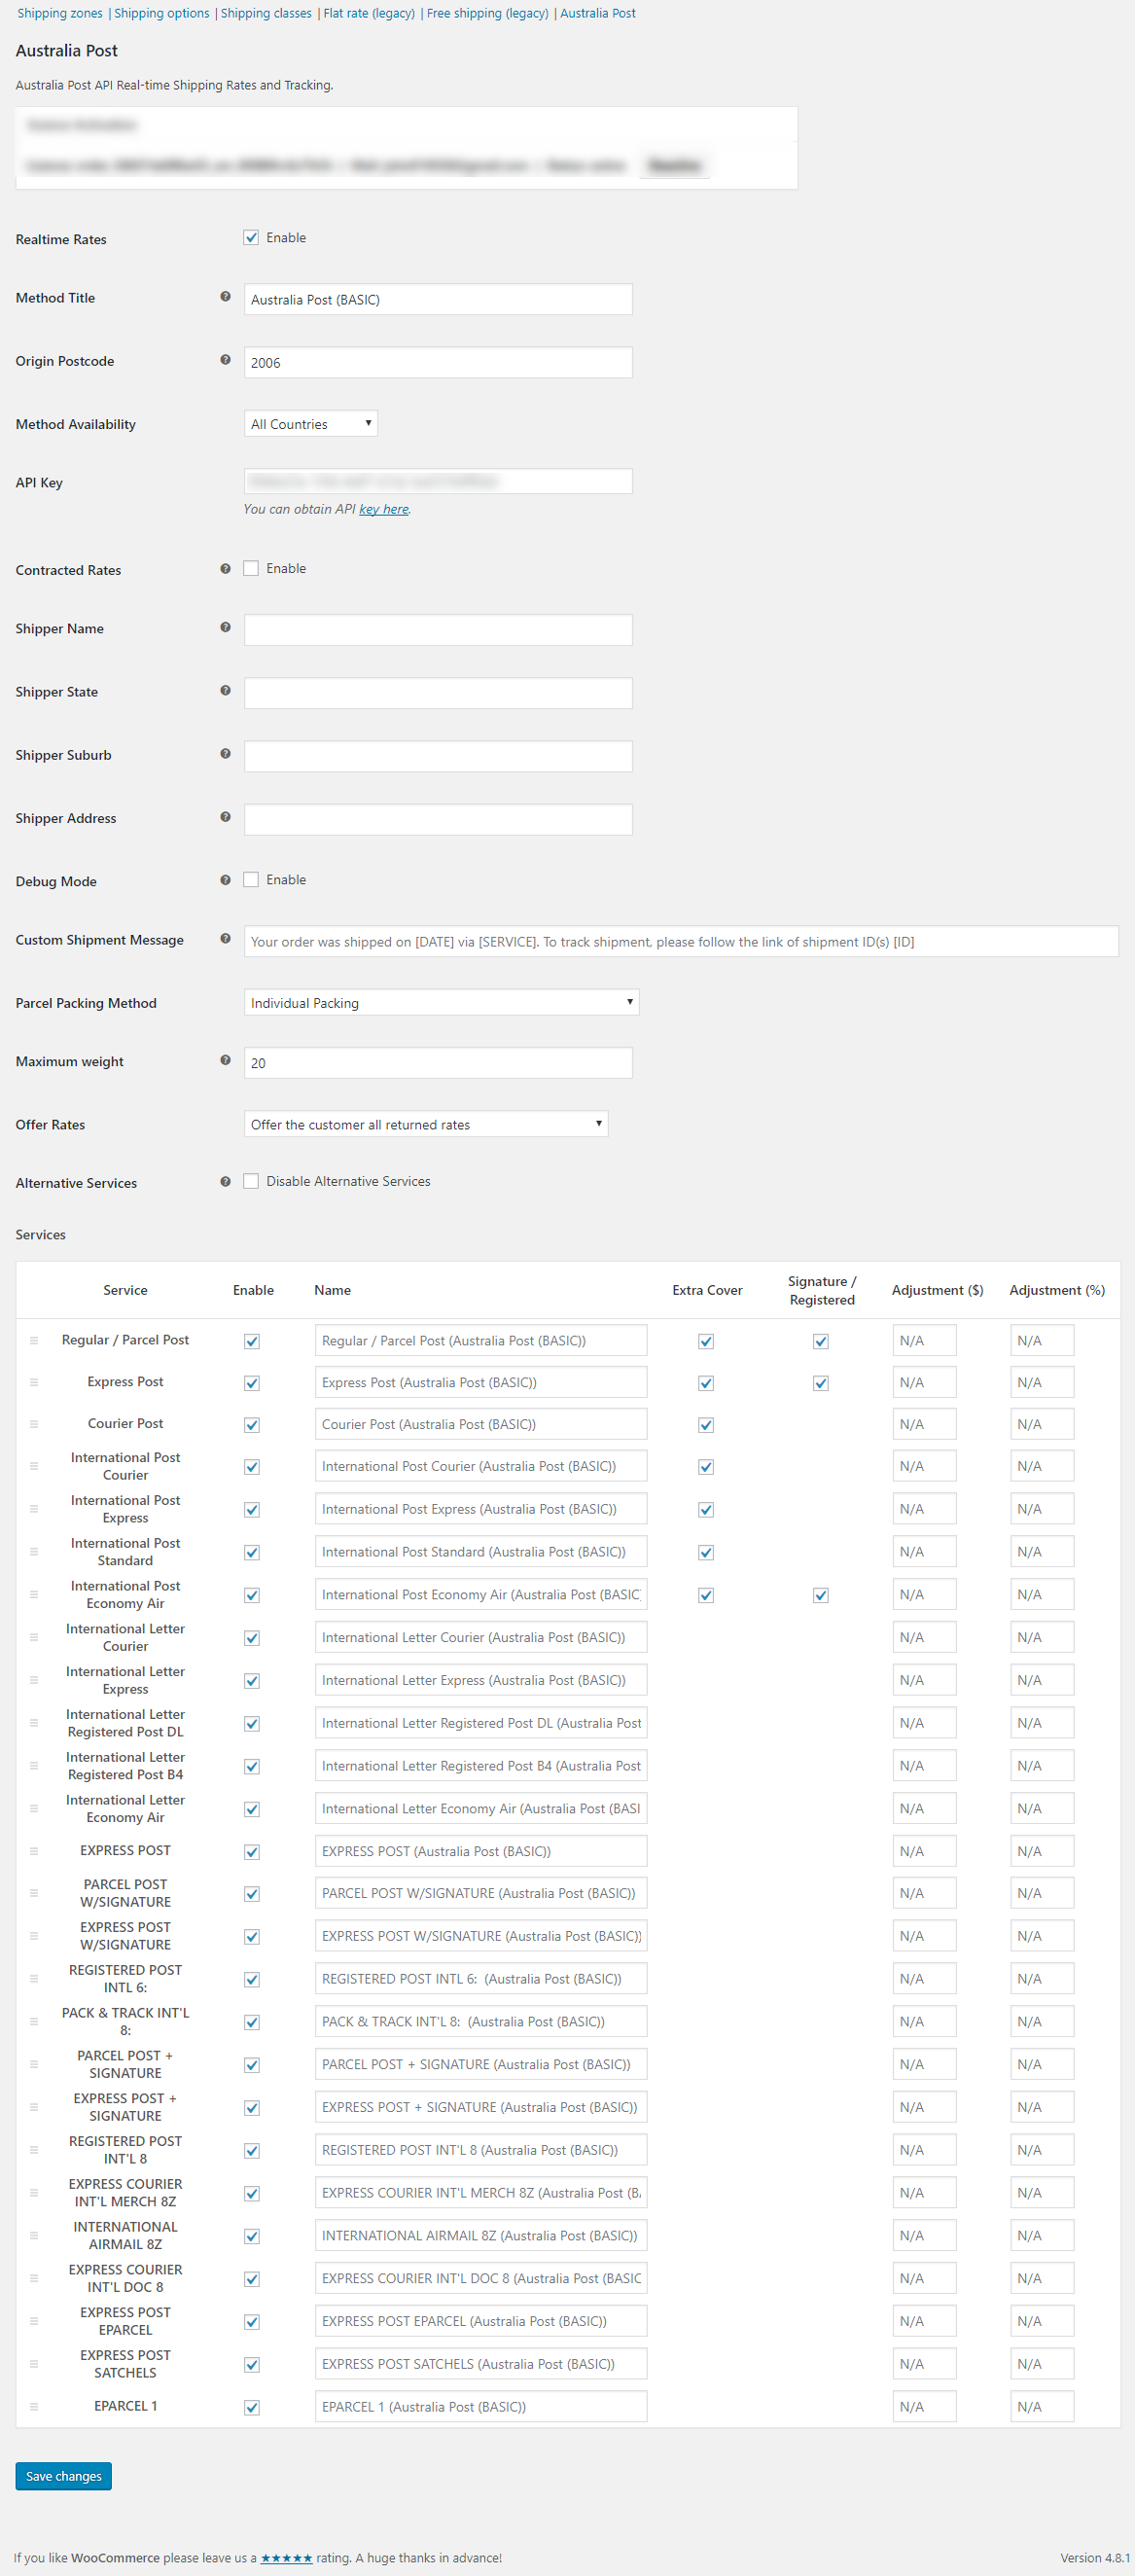 The settings page is more detailed compared to the basic version